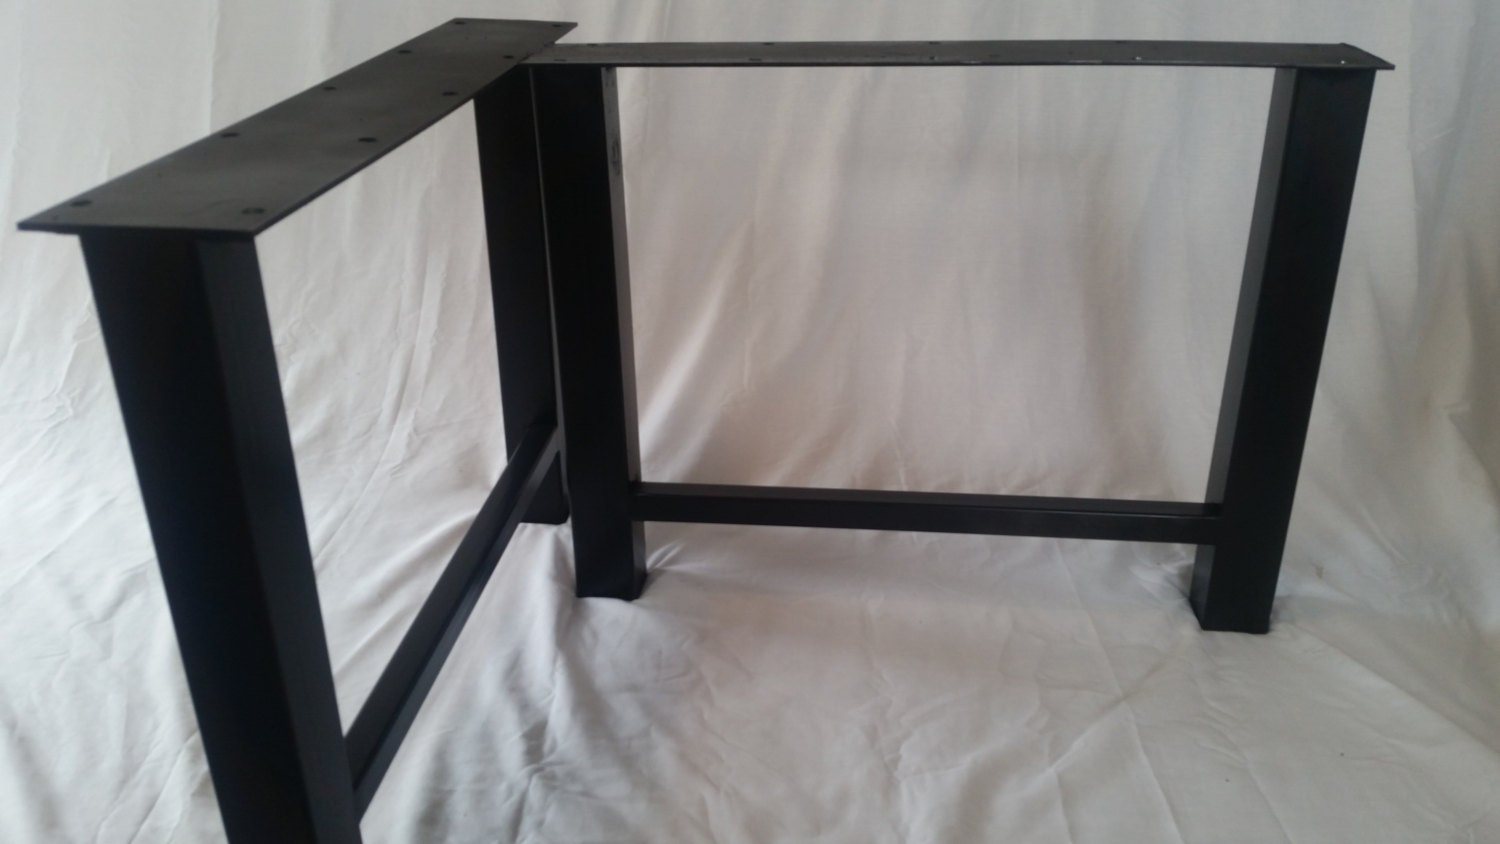 metal h frame table legs by basemetaldesign on etsy